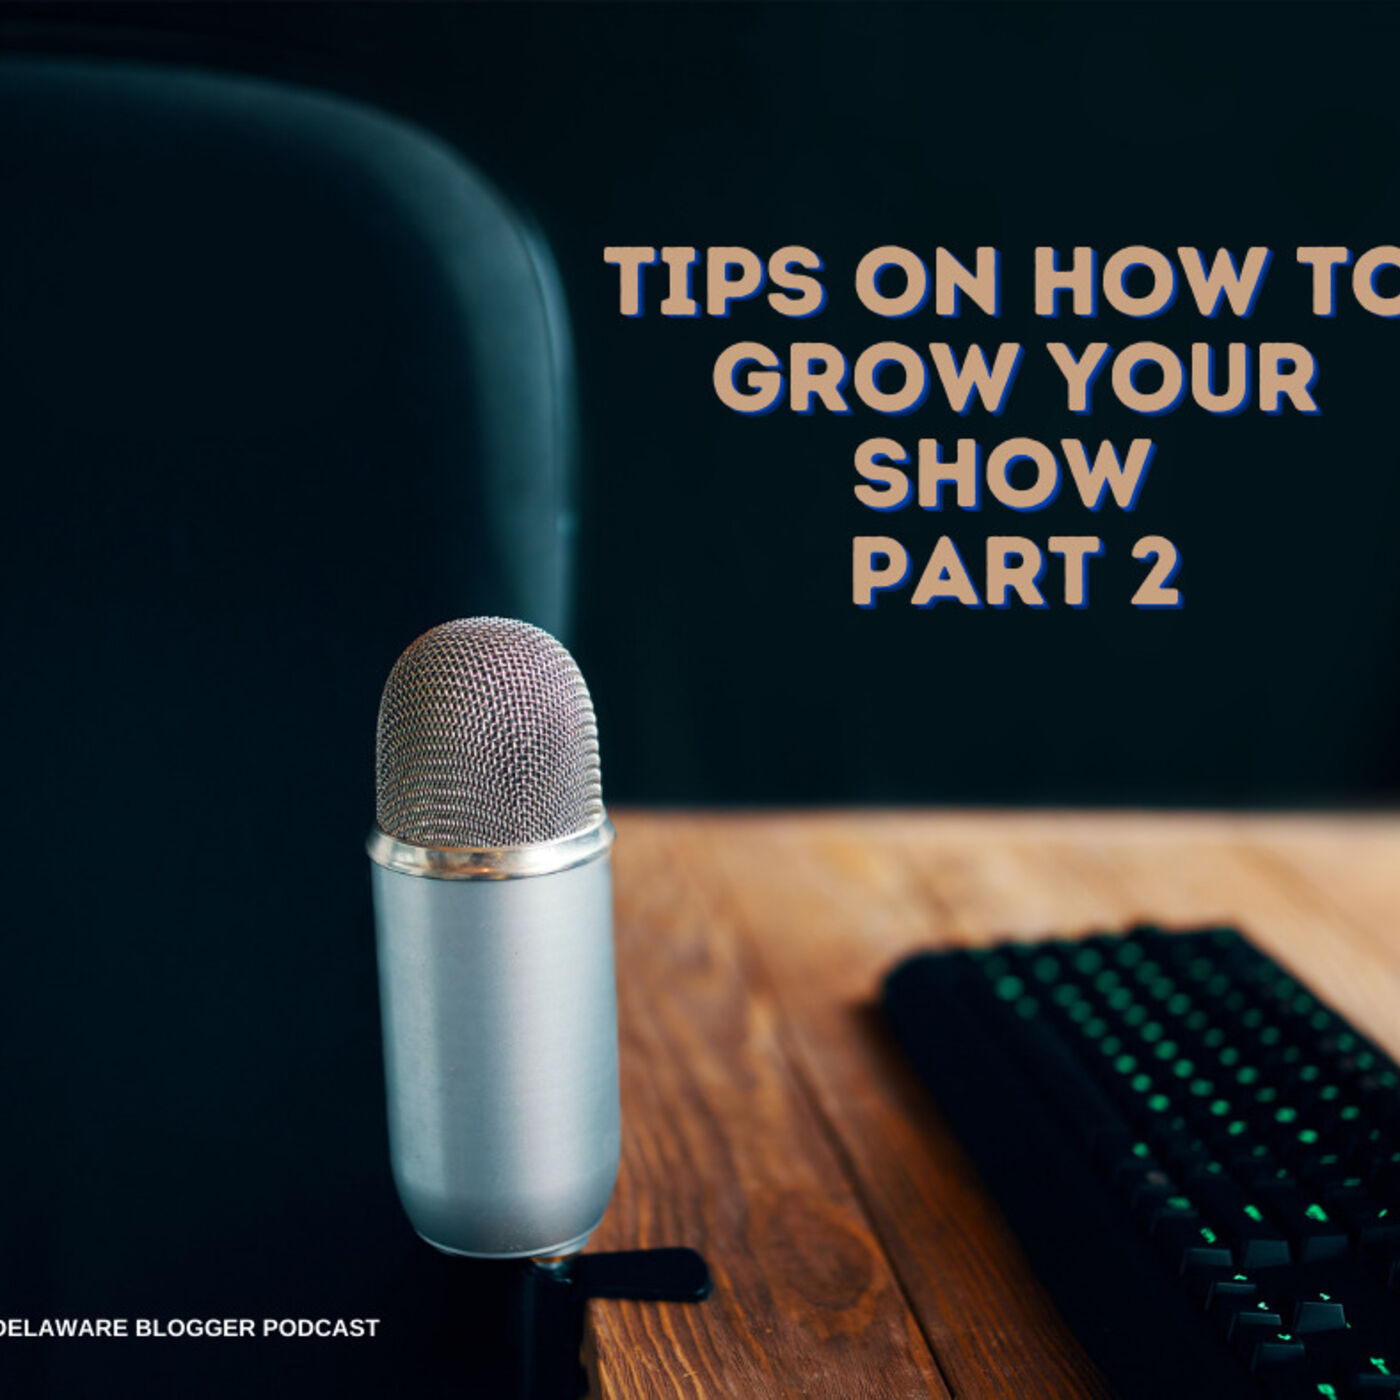 Tips On How to Grow Your Show - Part 2